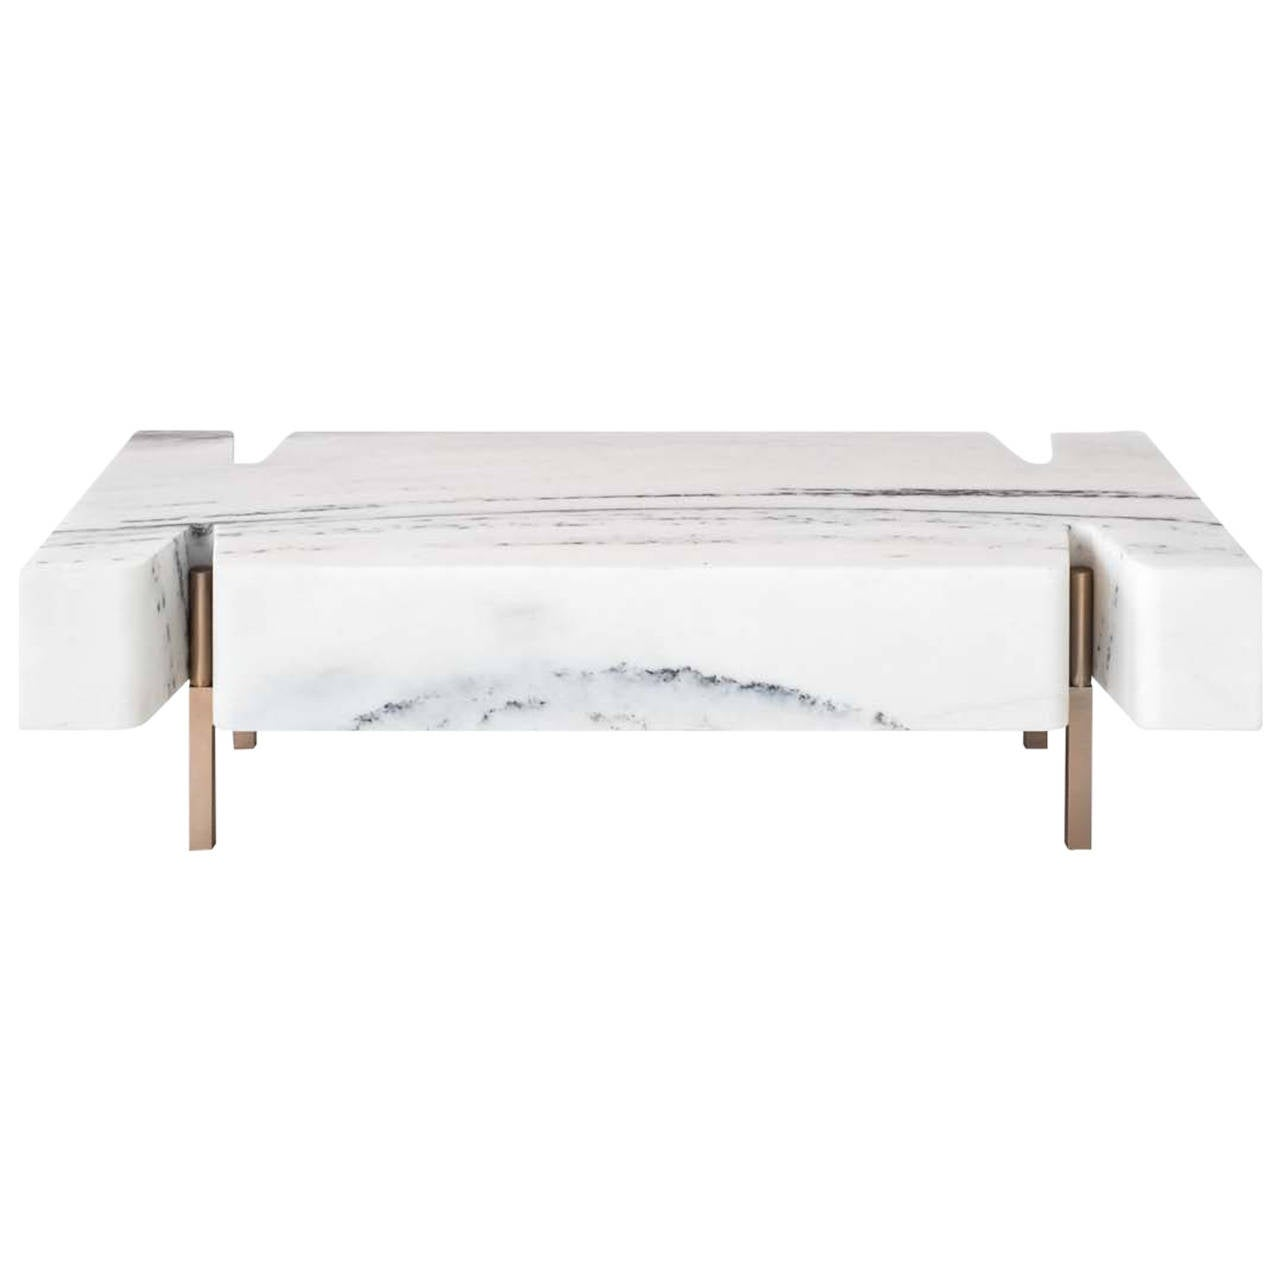 Coffee Table Bases For Marble Tops: Terranova Coffee Table Or Cocktail Table With Hewn Marble